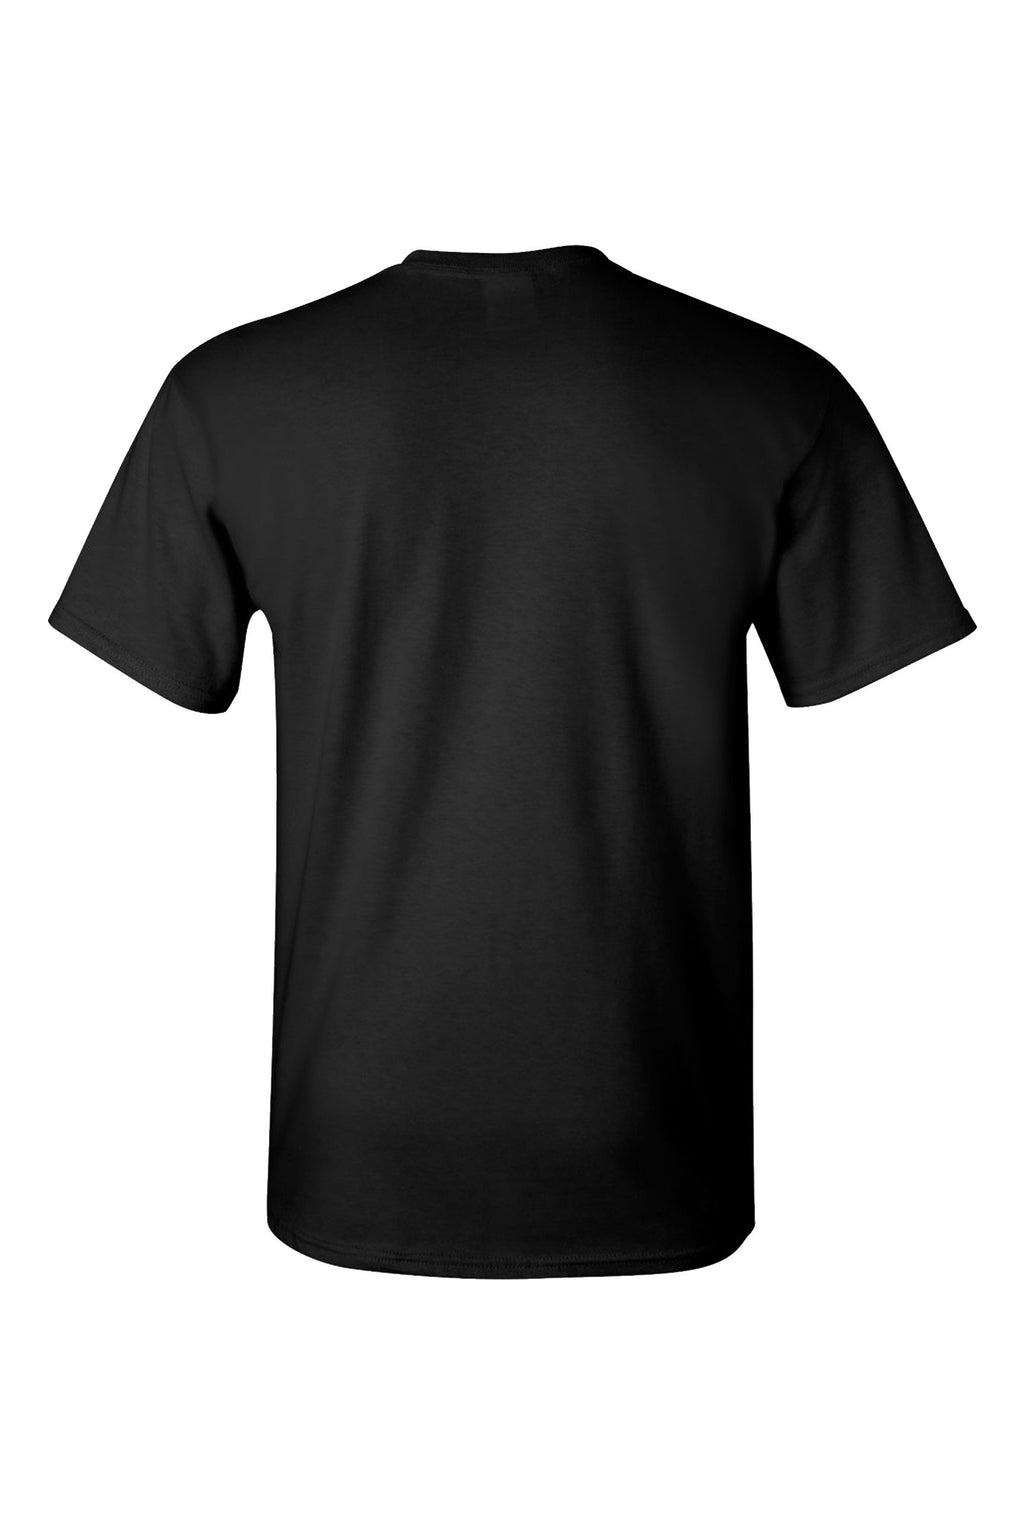 Unisex Number 1 Dad Short Sleeve Shirt